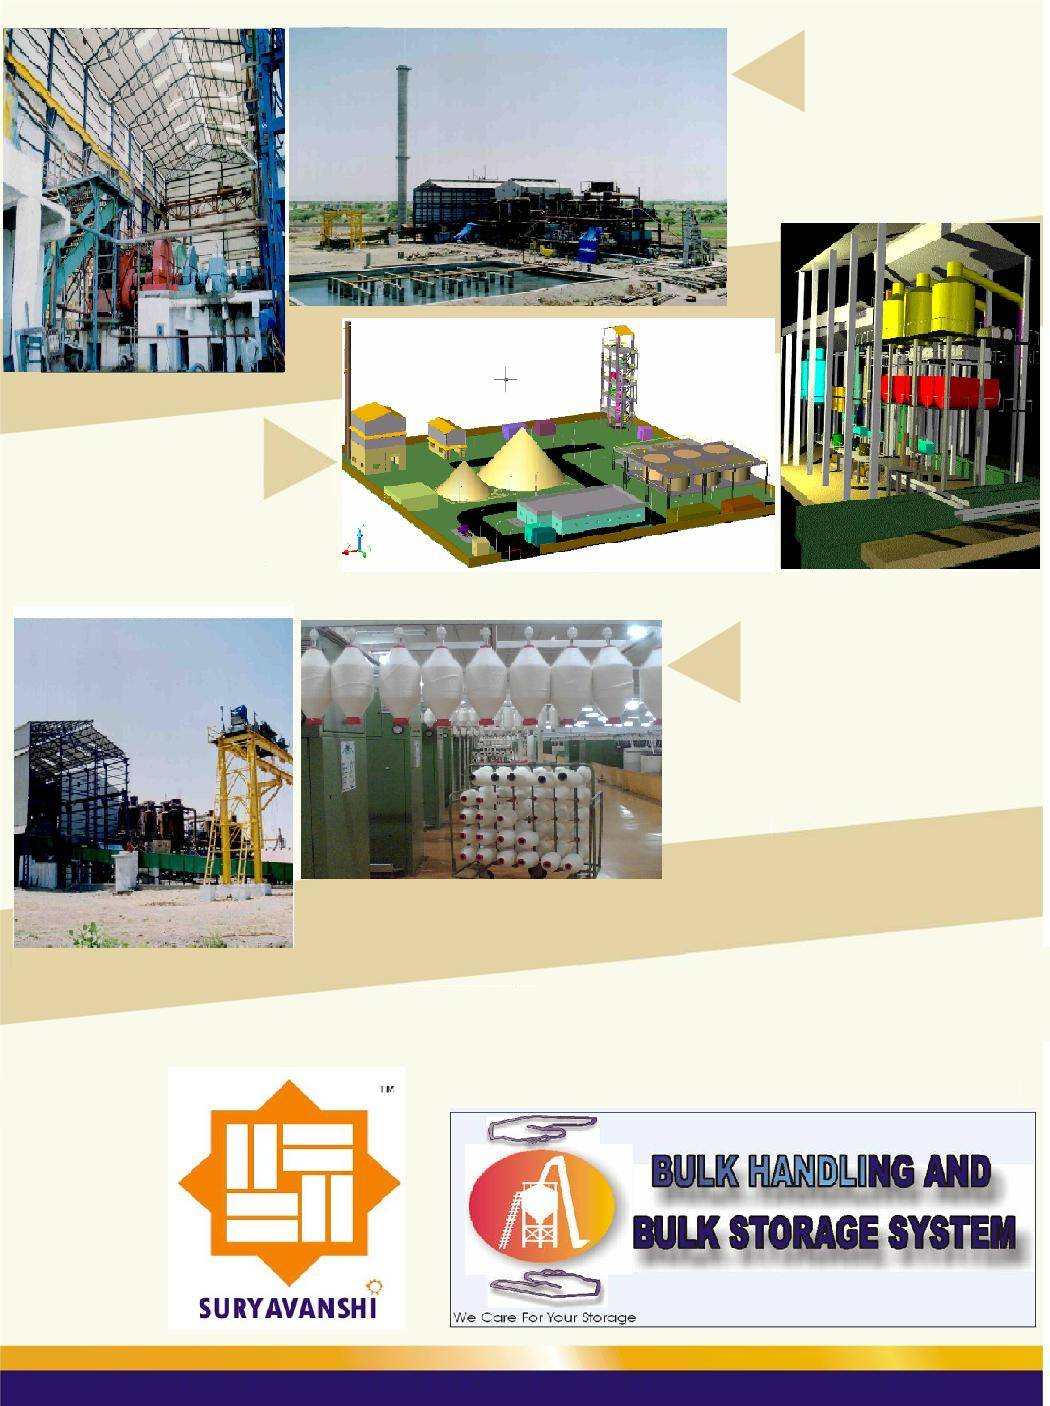 Turnkey supply of Various Plants, Machineries & Equipments for All Industrial Sectors